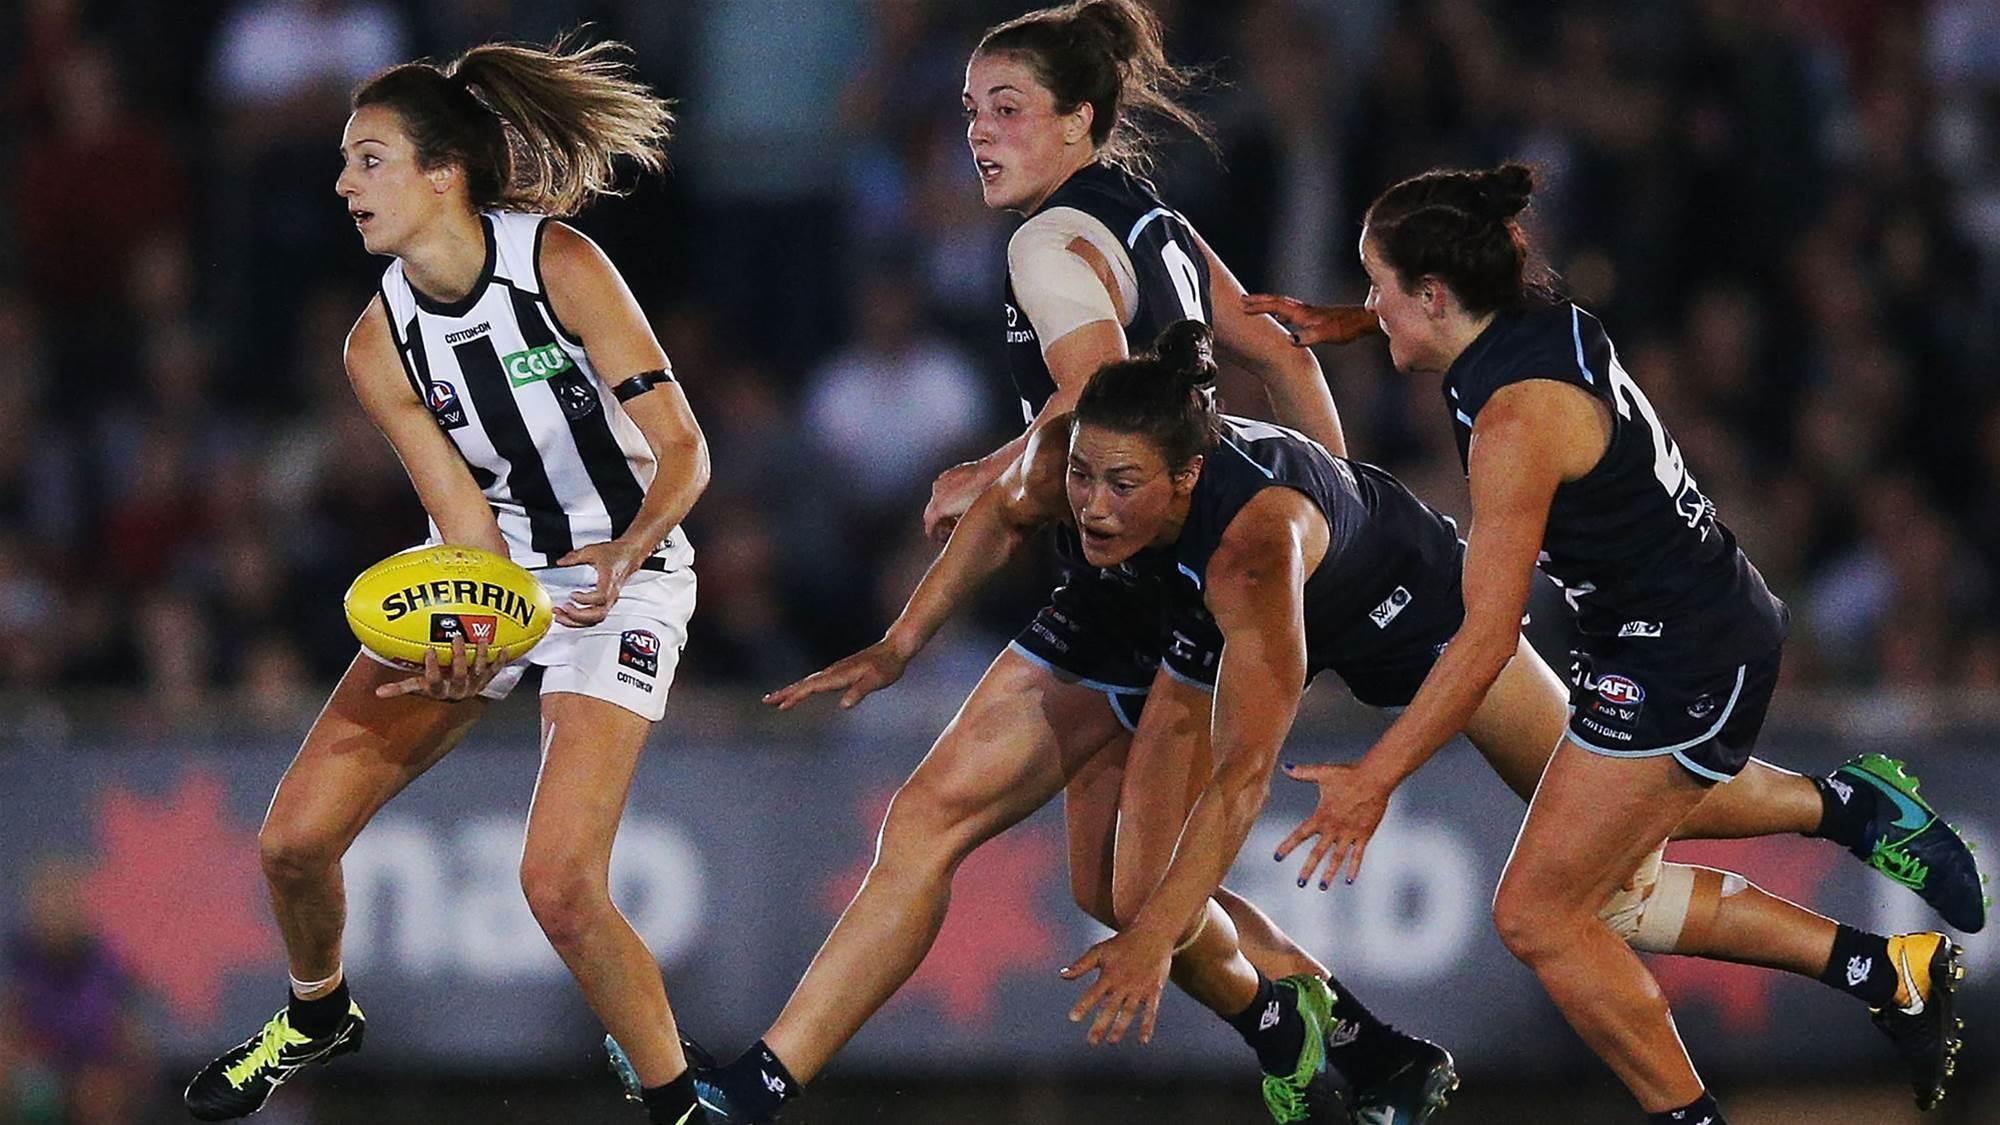 Chiocci re-signs with Pies